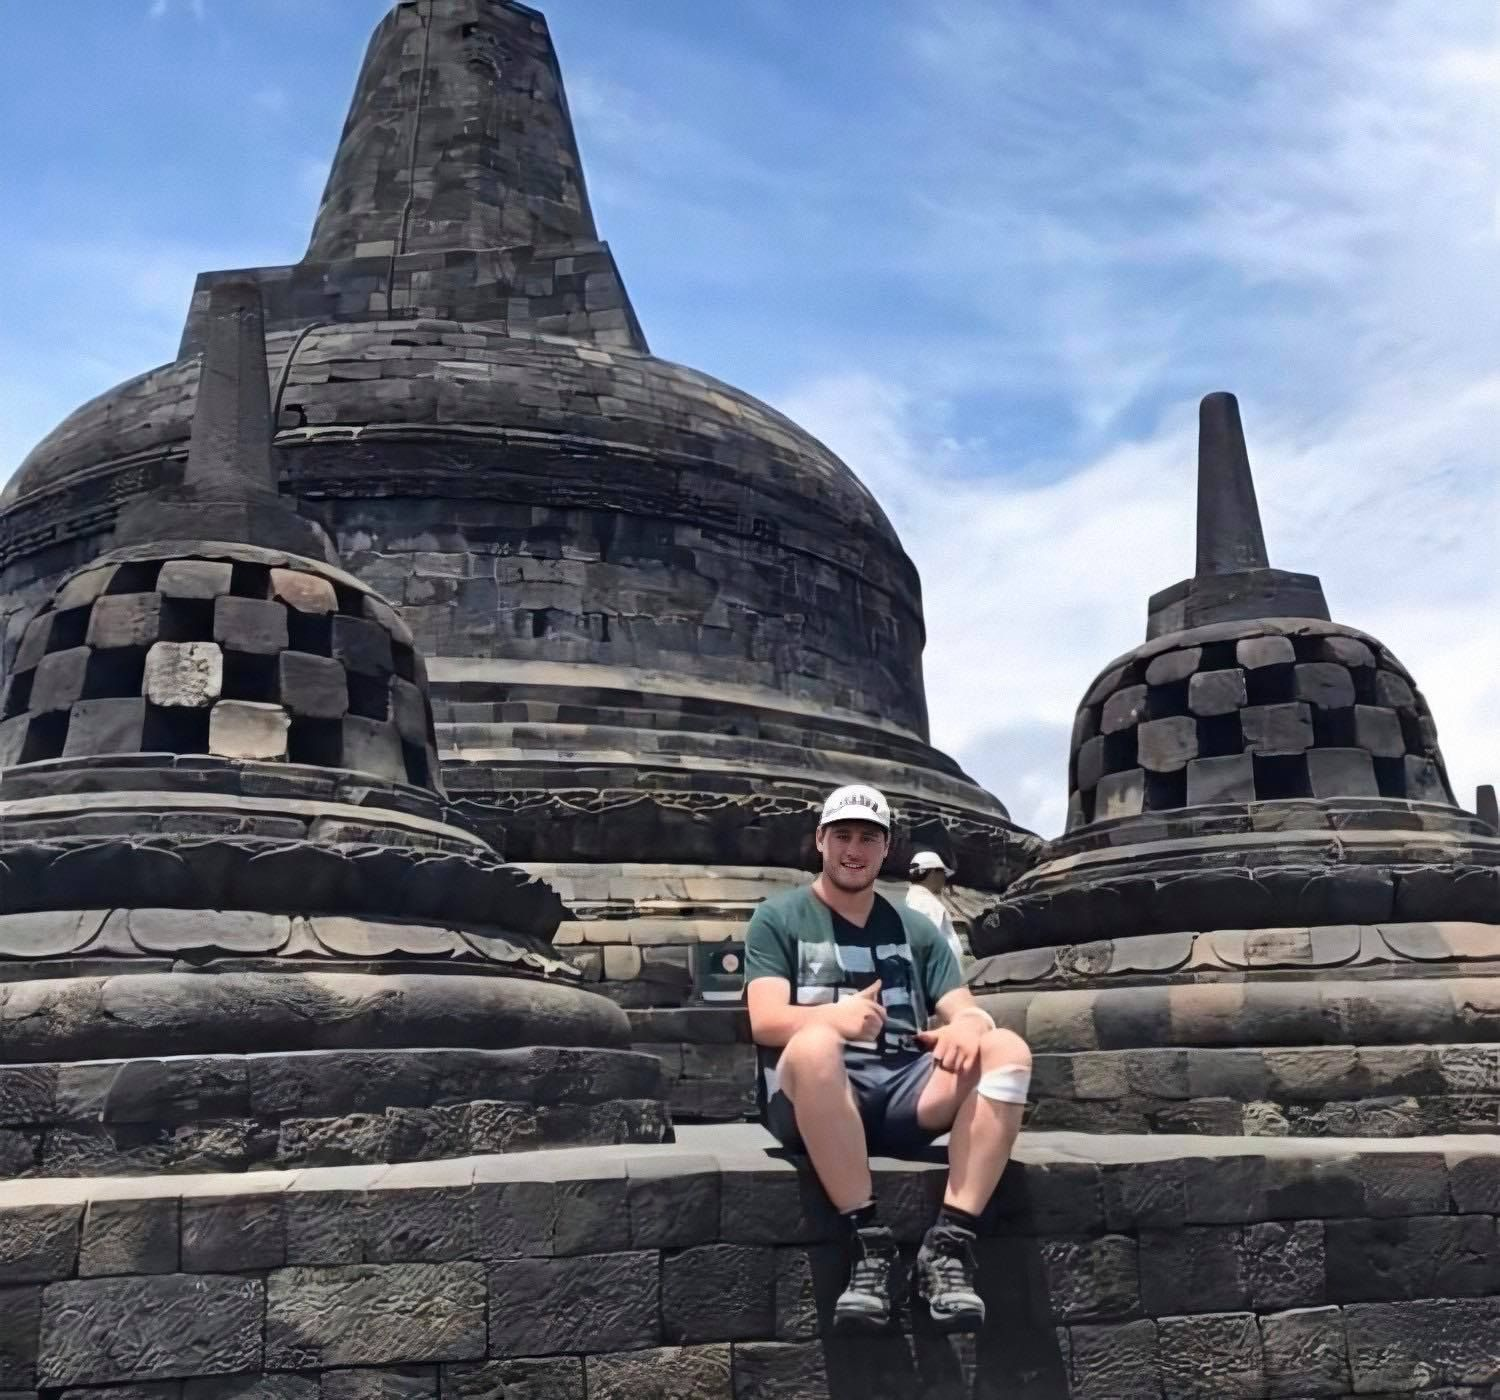 Image may contain: Portrait, Photo, Photography, Monument, Worship, Shrine, Face, Pants, Shorts, Vacation, Temple, Building, Architecture, Shoe, Footwear, Rock, Clothing, Apparel, Person, Human